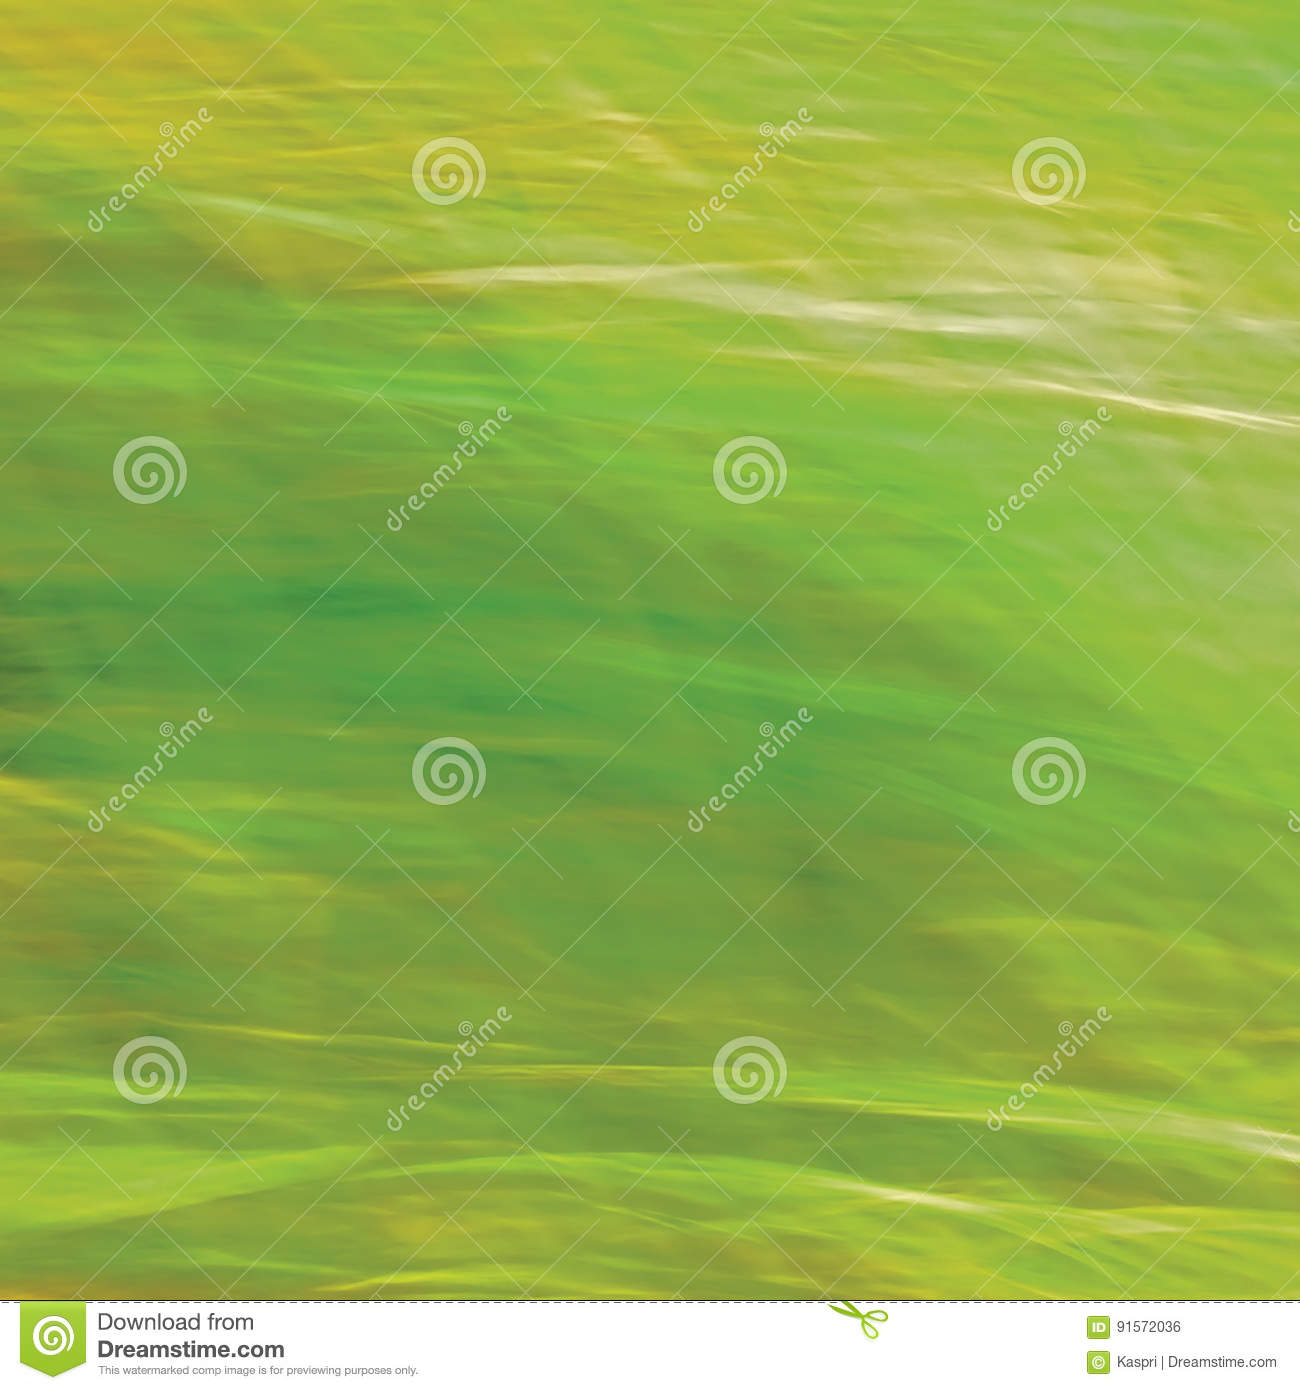 Motion Blurred Bright Meadow Grass Background, Abstract Green, Yellow, Amber Horizontal Texture Pattern Copy Space